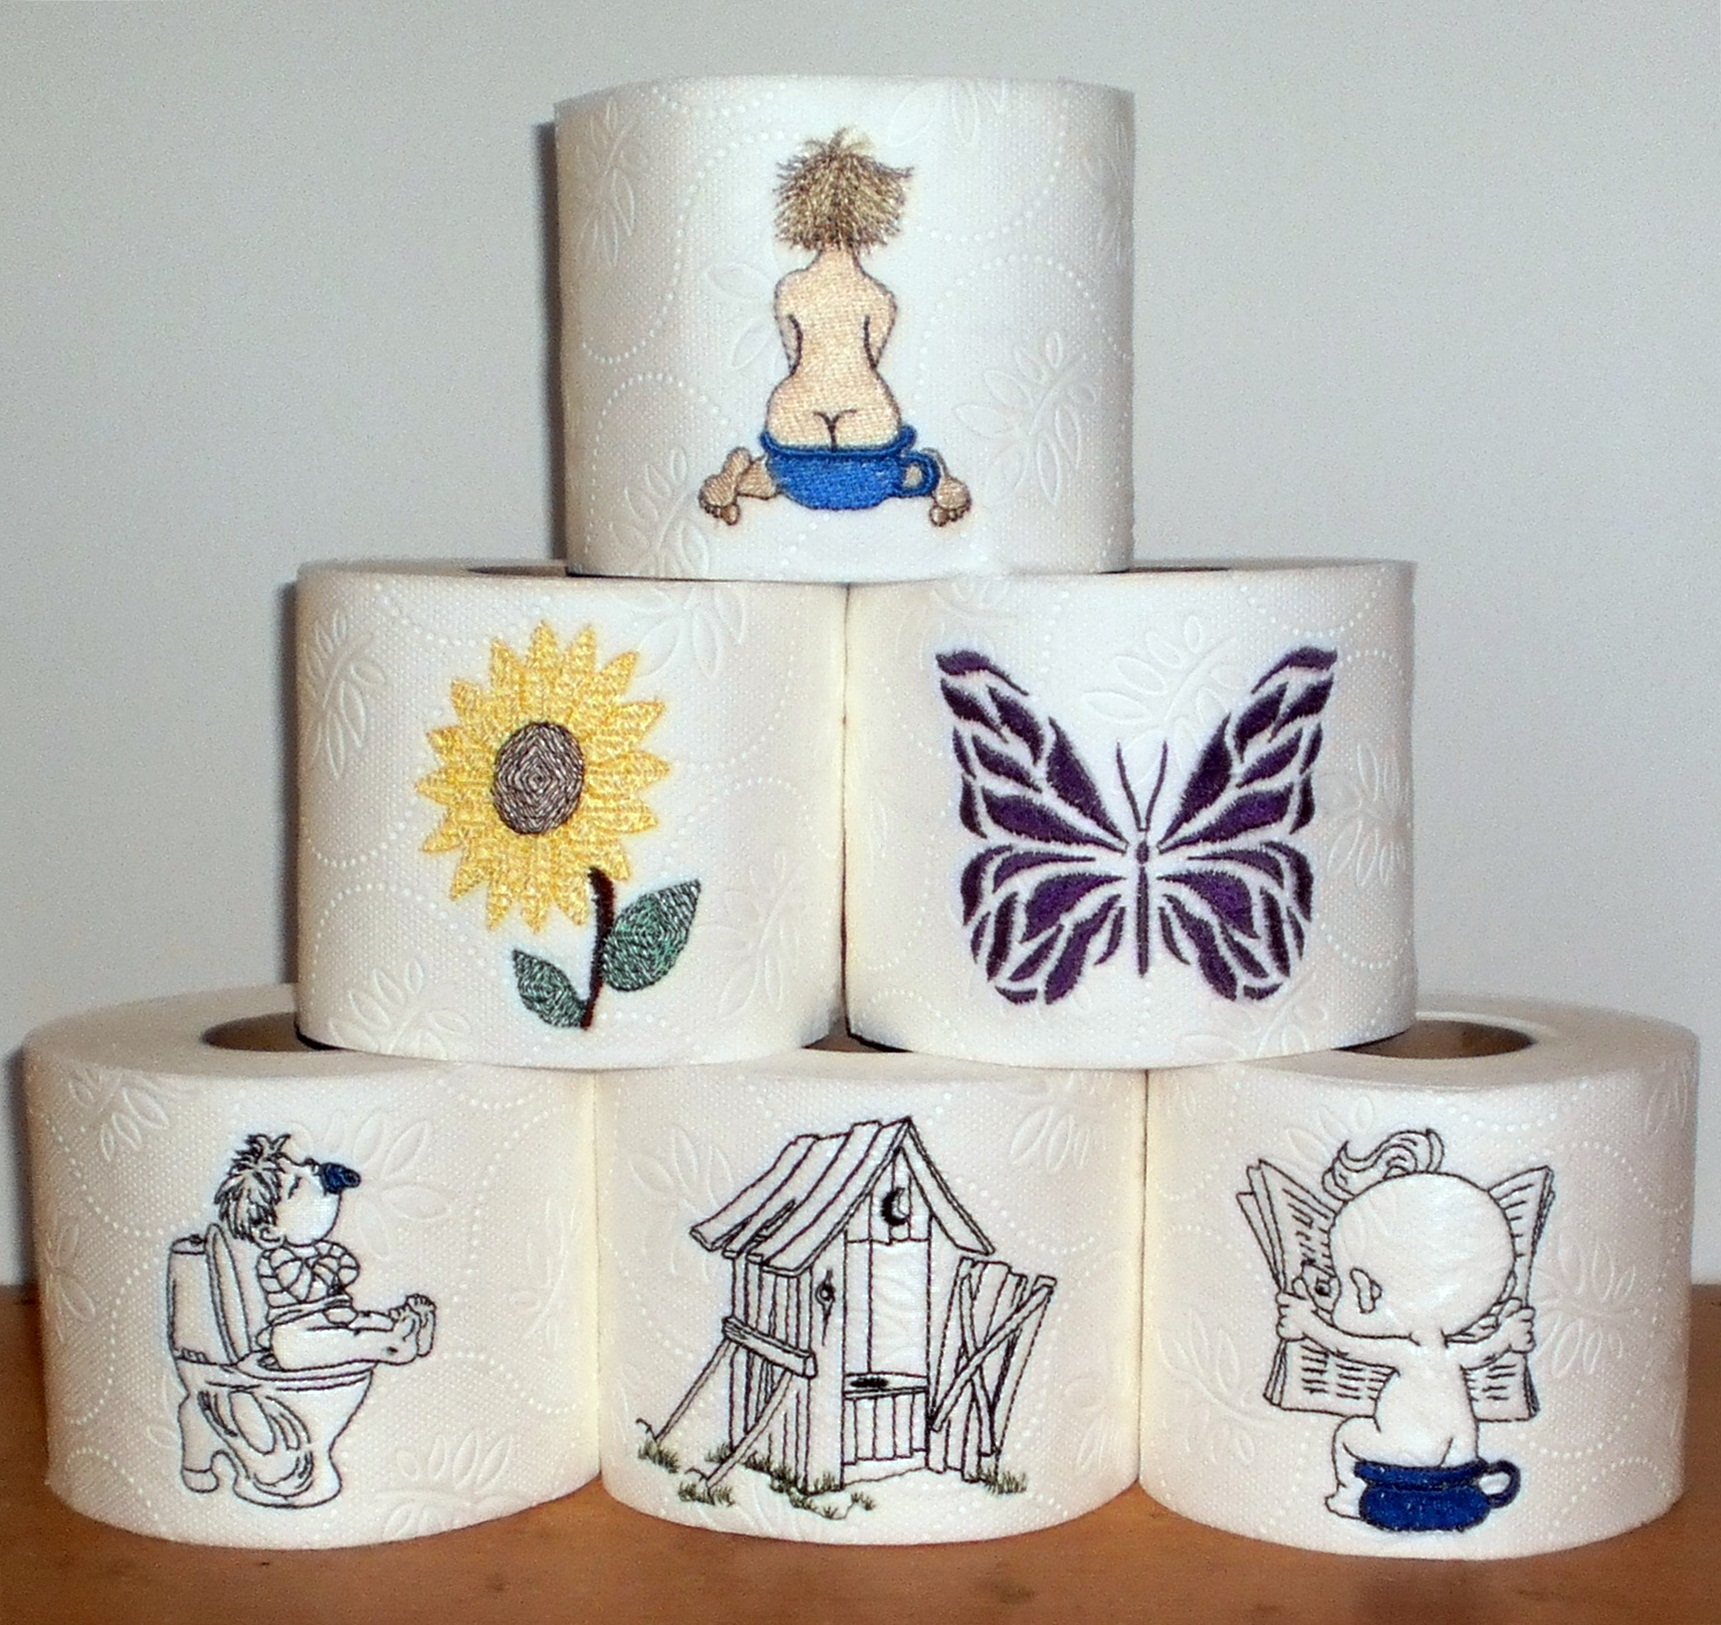 Embroidery designs for toilet paper - Here Is Some Of The Toilet Paper I Have Made This Is So Funny